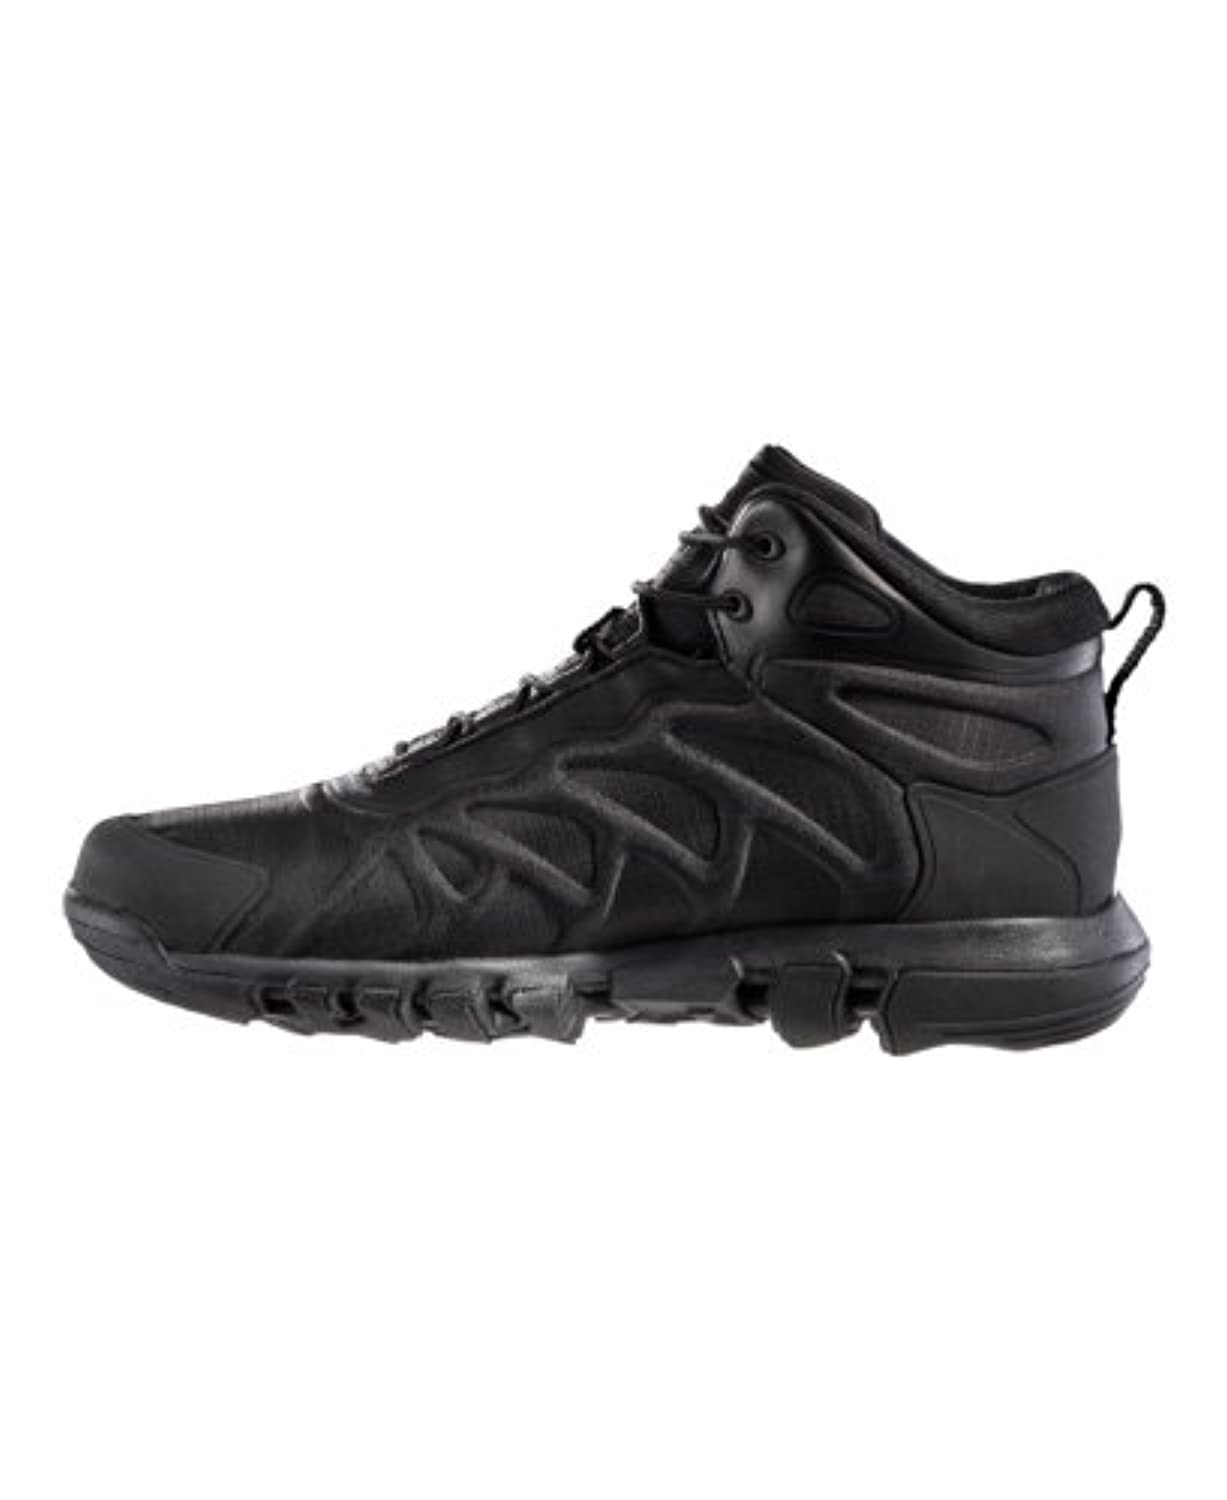 Under Armour Men's UA Valsetz Venom Mid Tactical Boots 12 Black